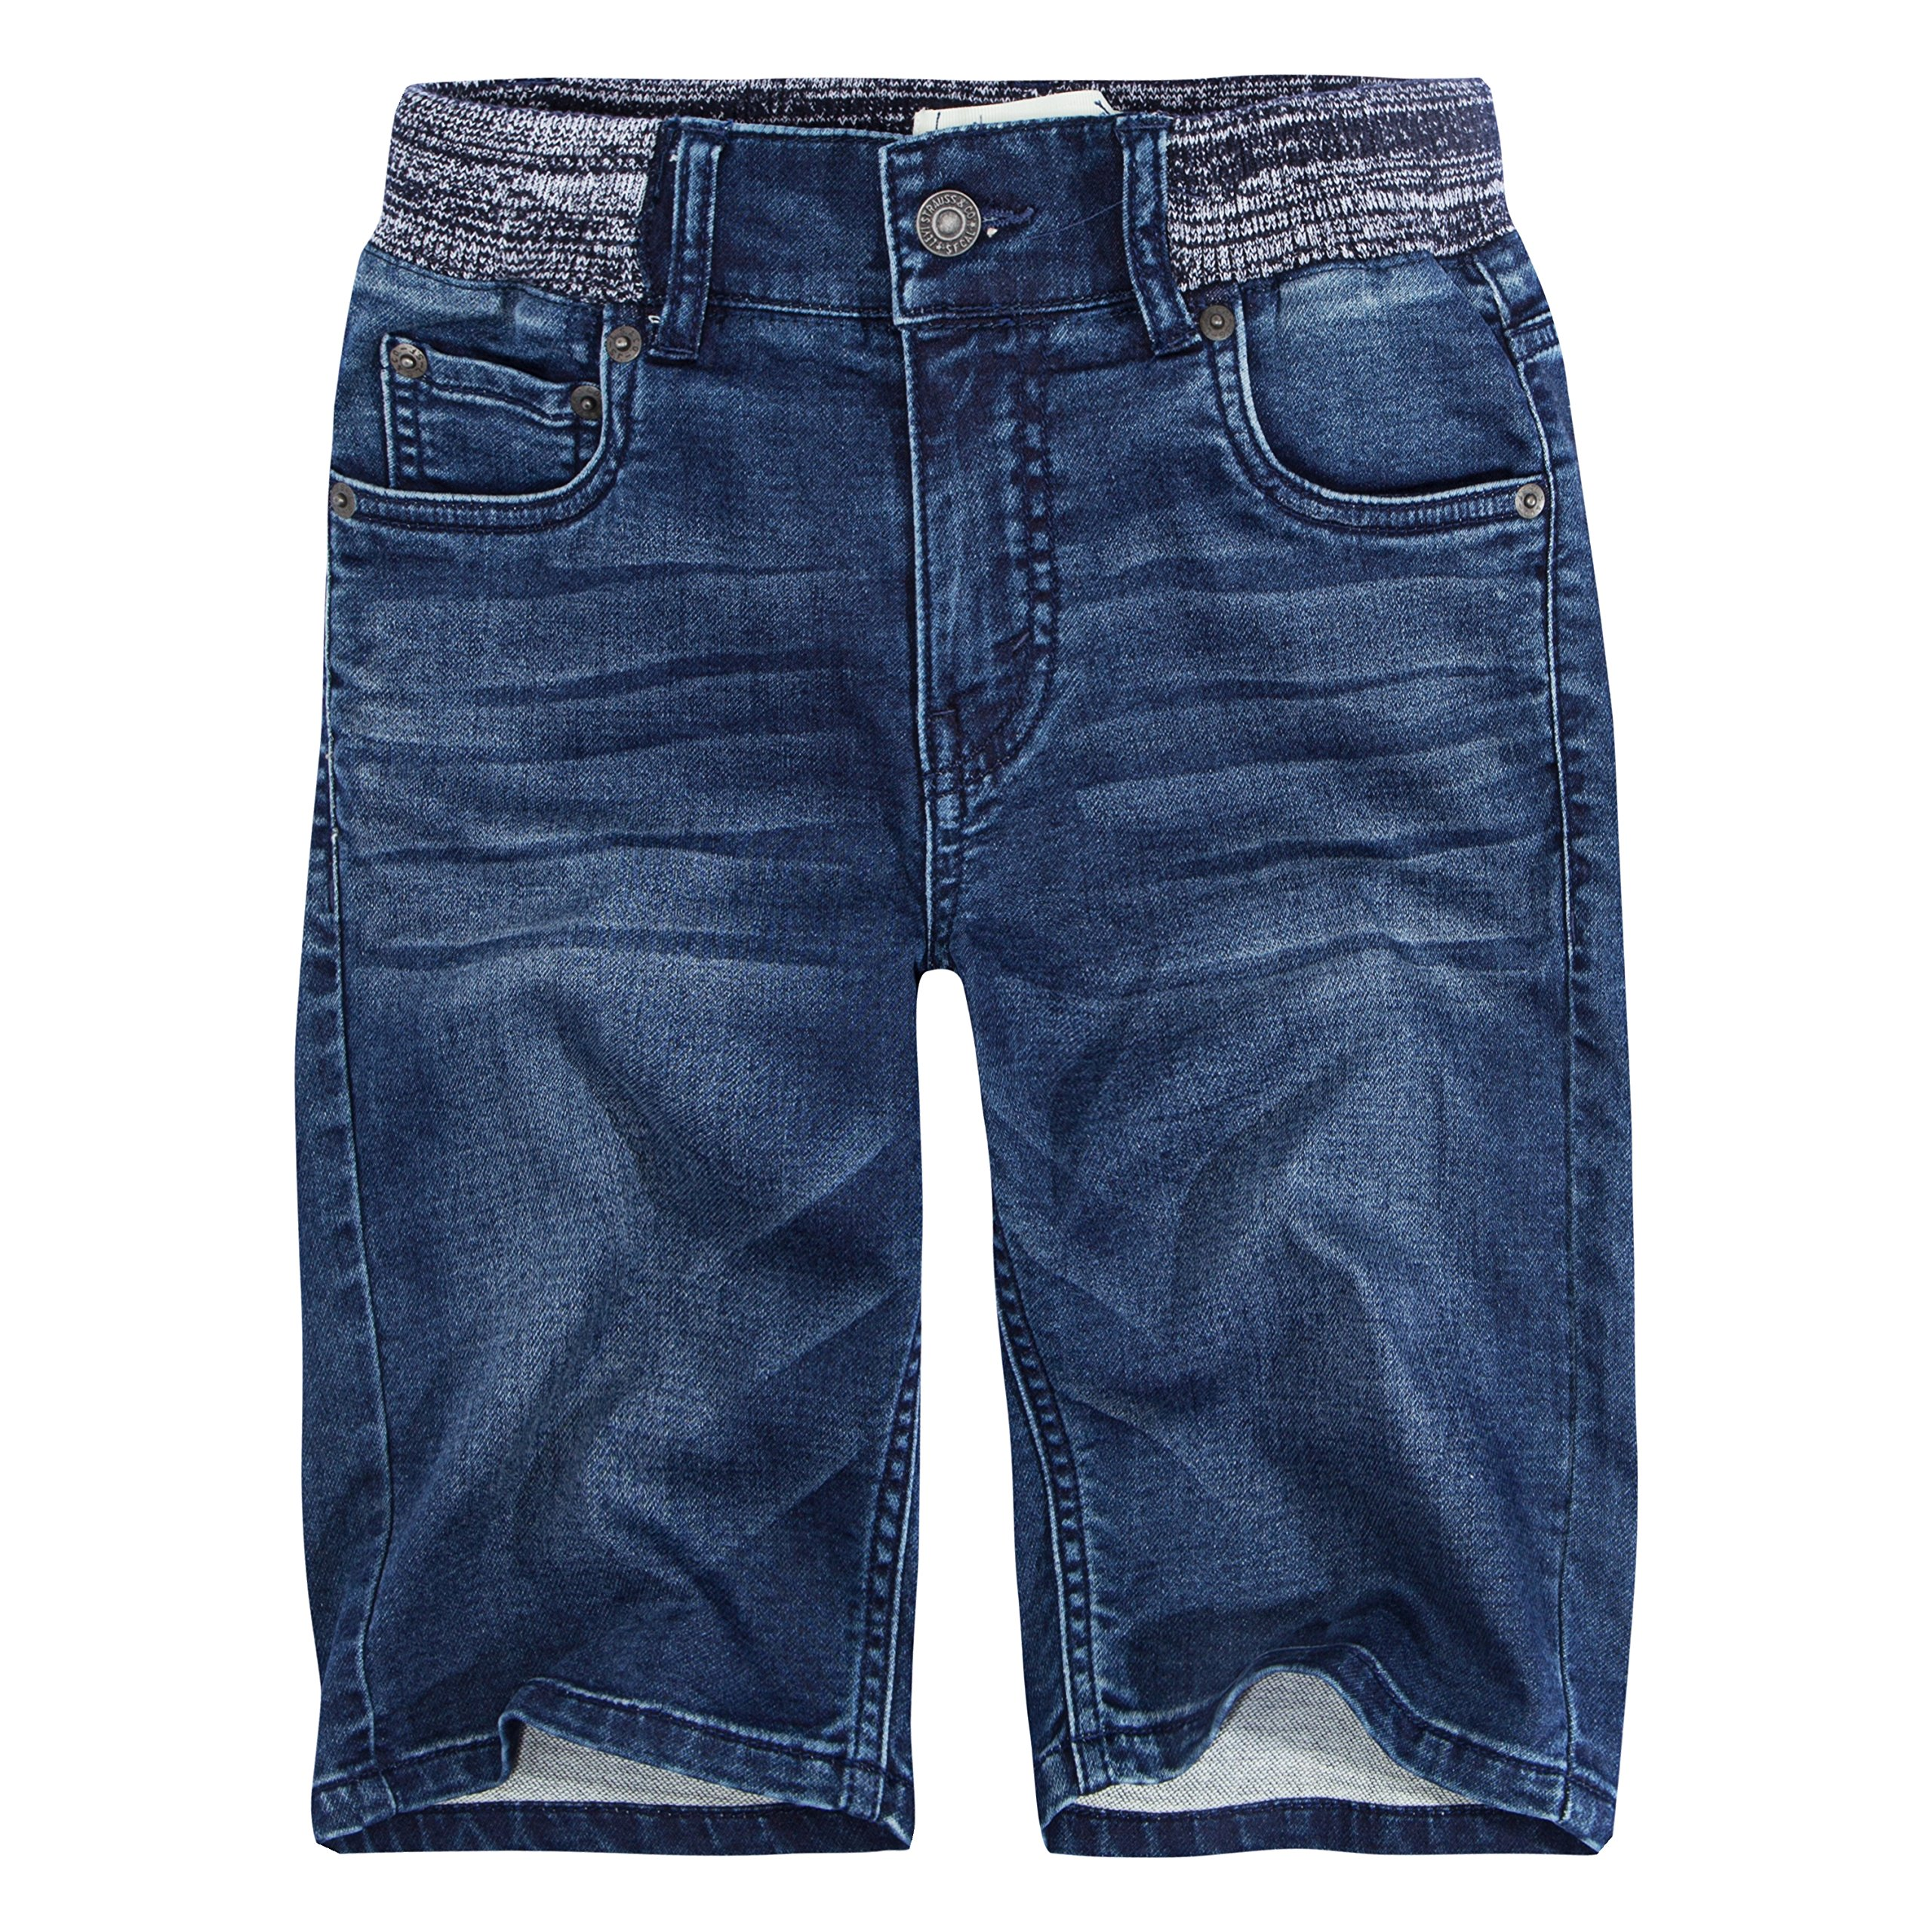 79e4902f10 Cheap Levi Shorts For Men, find Levi Shorts For Men deals on line at ...